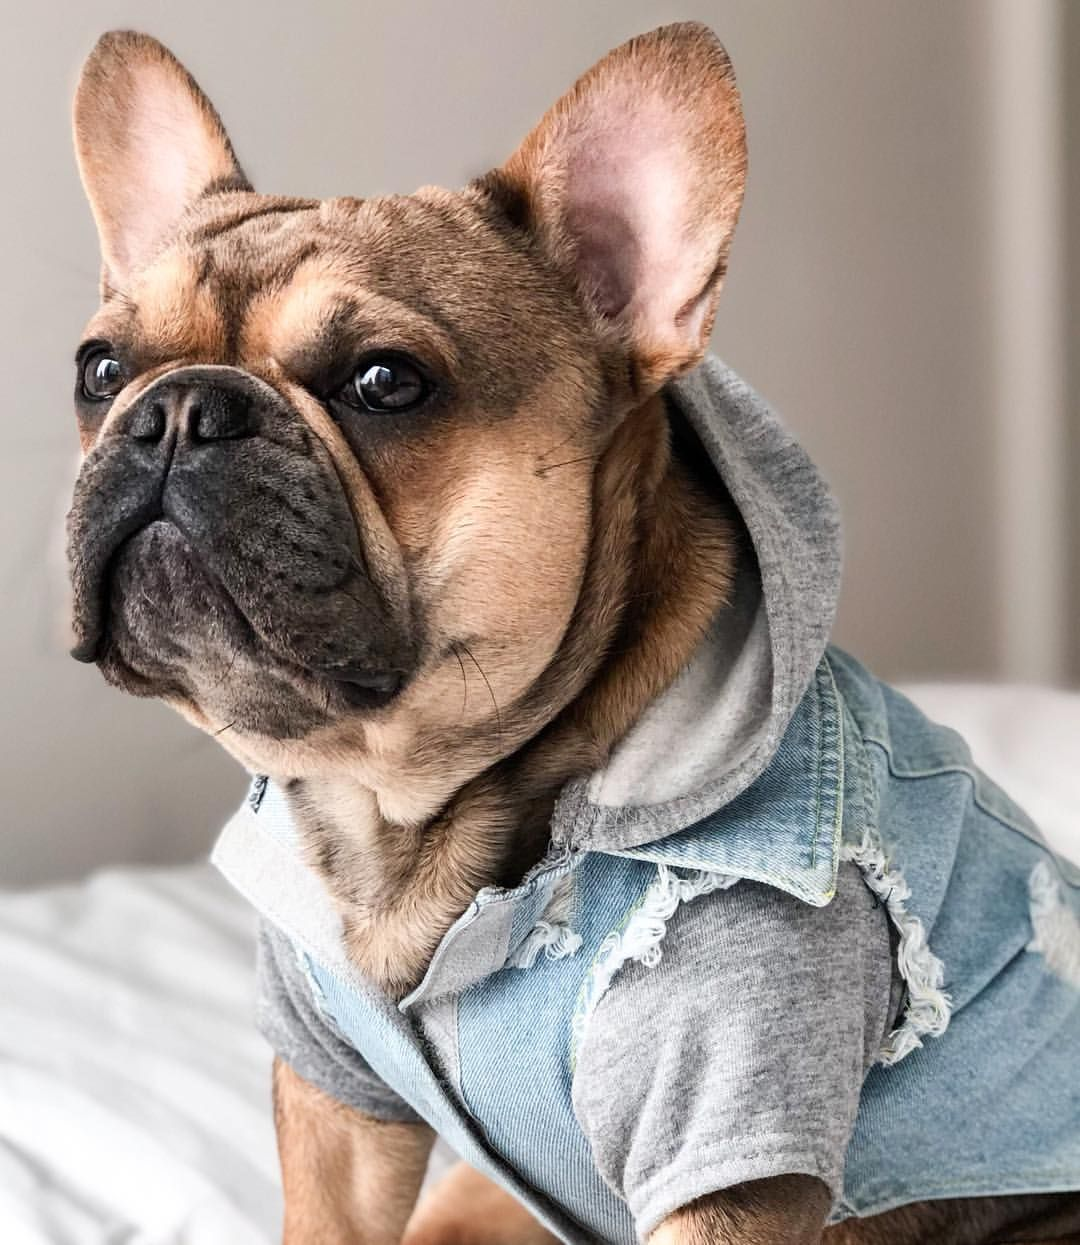 Tungsten On Instagram So Uh You Gonna Finish That Pizza Hangry Pizzatime Sharingiscaring Fren French Bulldog Funny French Bulldog Bulldog